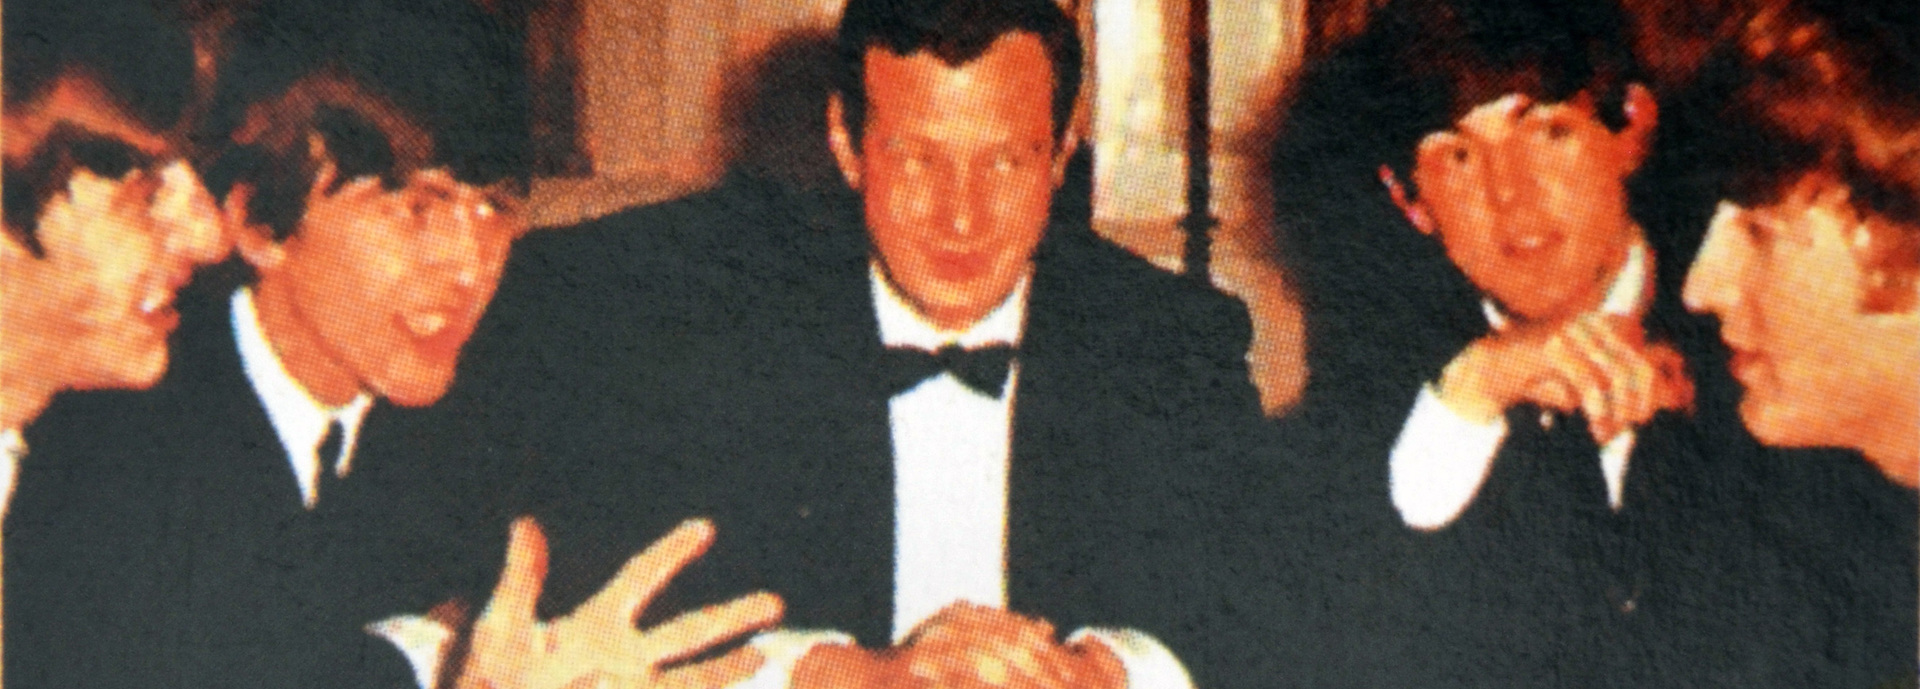 Brian Epstein with the Beatles.